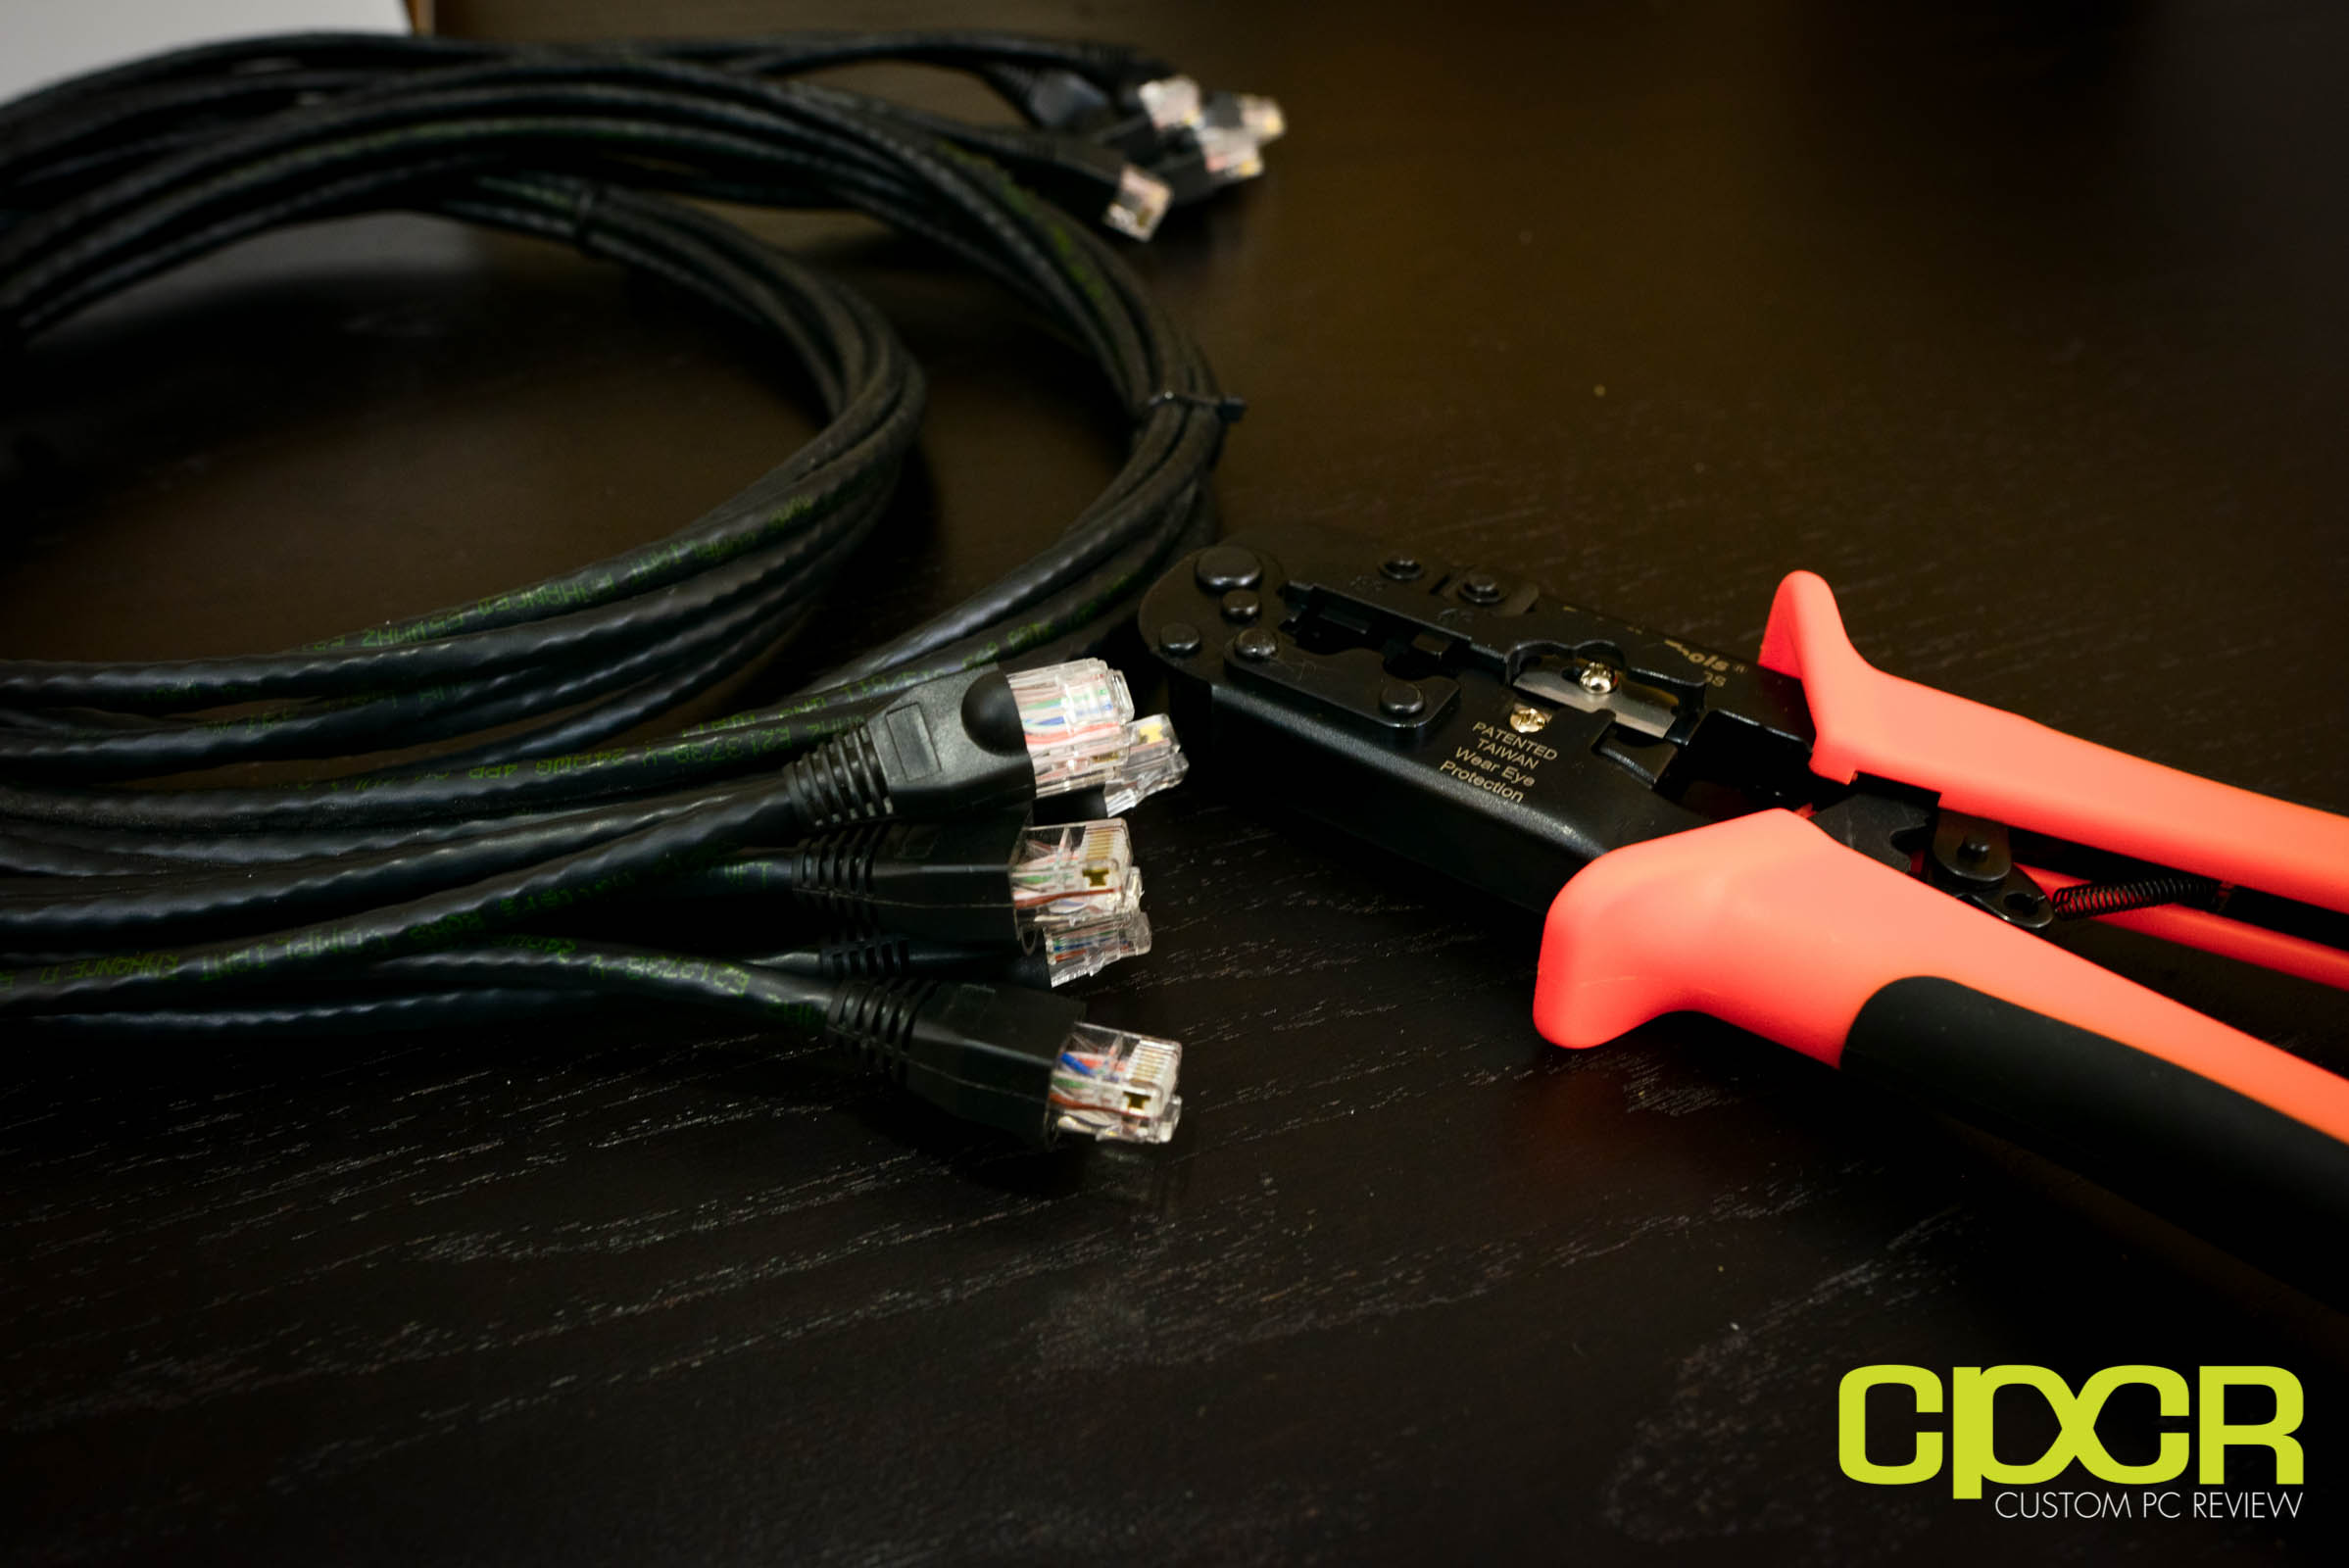 How to Make Ethernet Cables to Save Money | Custom PC Review